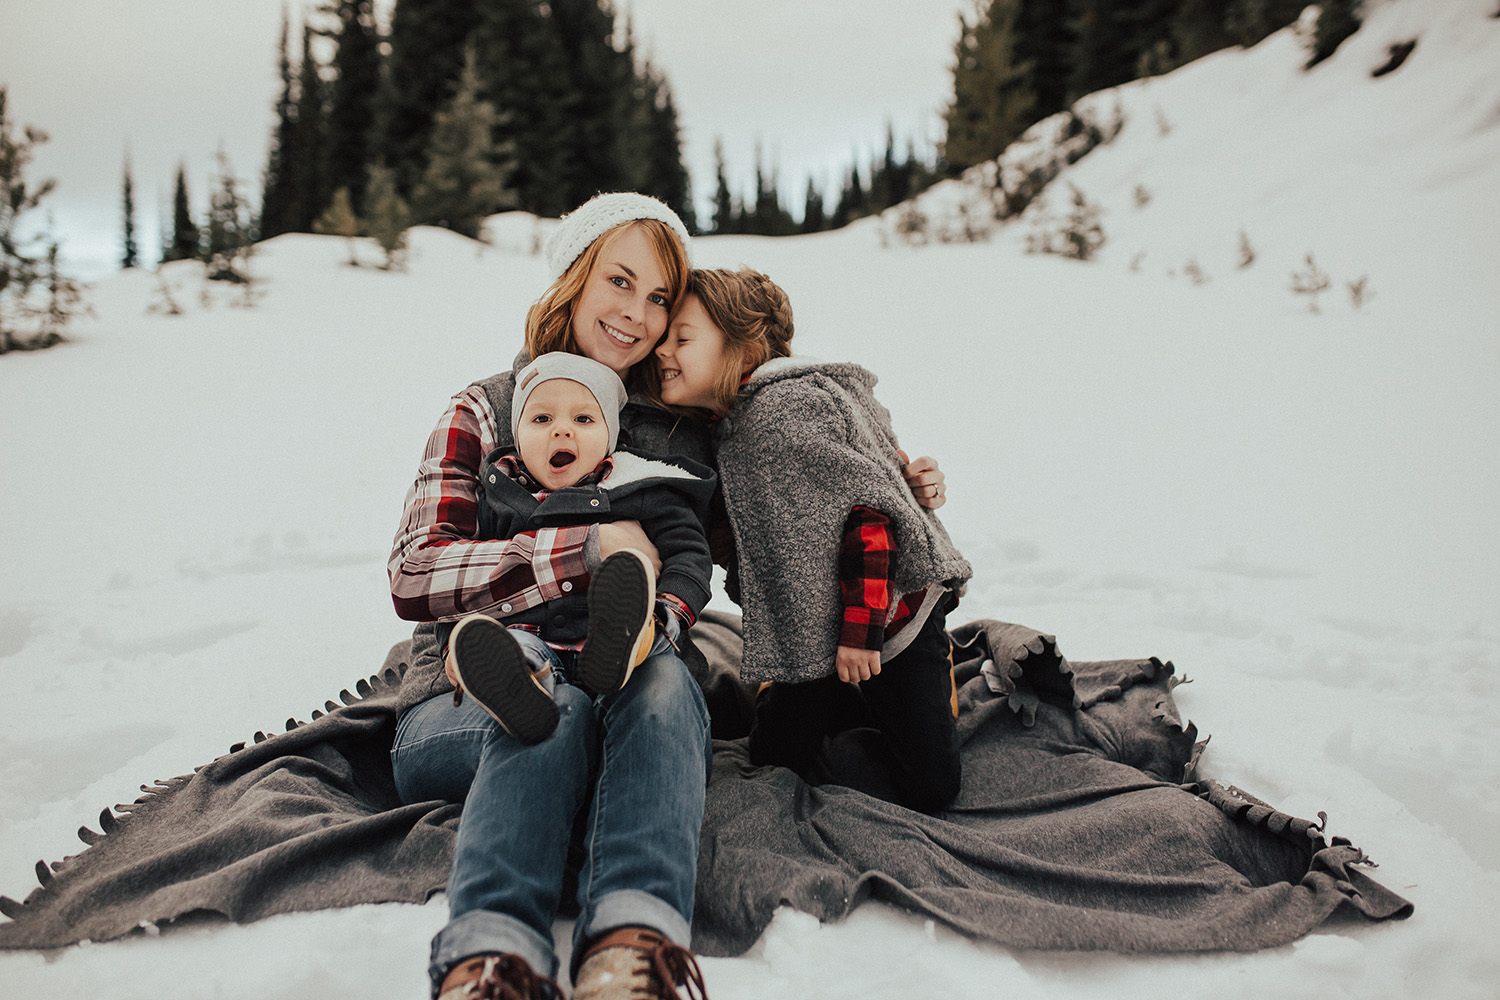 Winter Family Photos at Big White